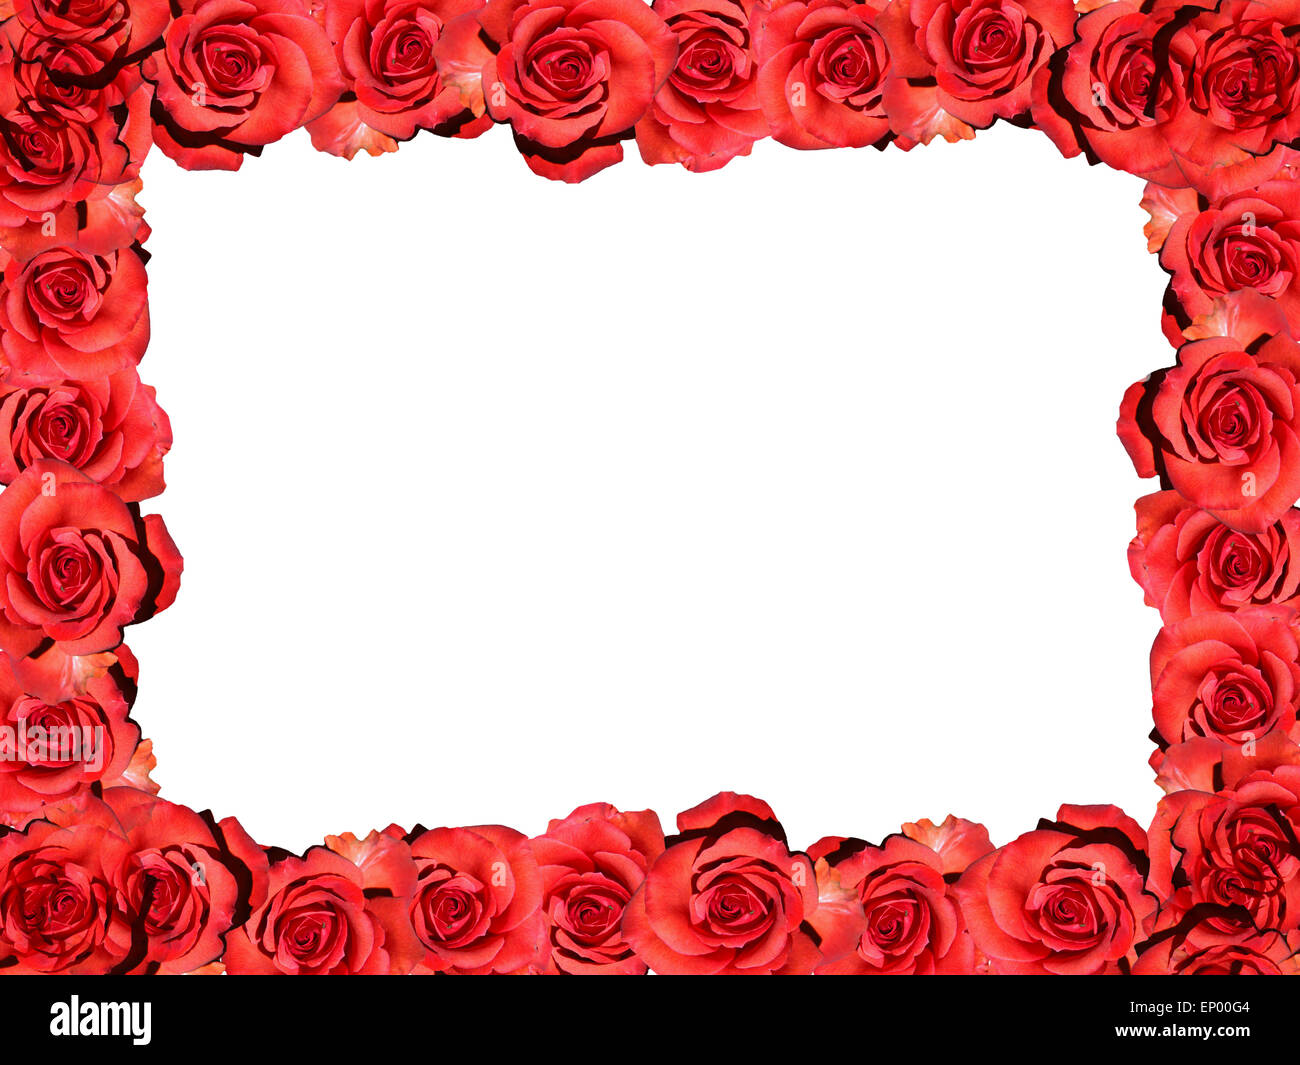 Rahmen: Rote Rosen   Symbolbild Liebe/ Valentinstag/ Frame: Red Rose    Symbolic Image For Love, Afection And Valentines Day